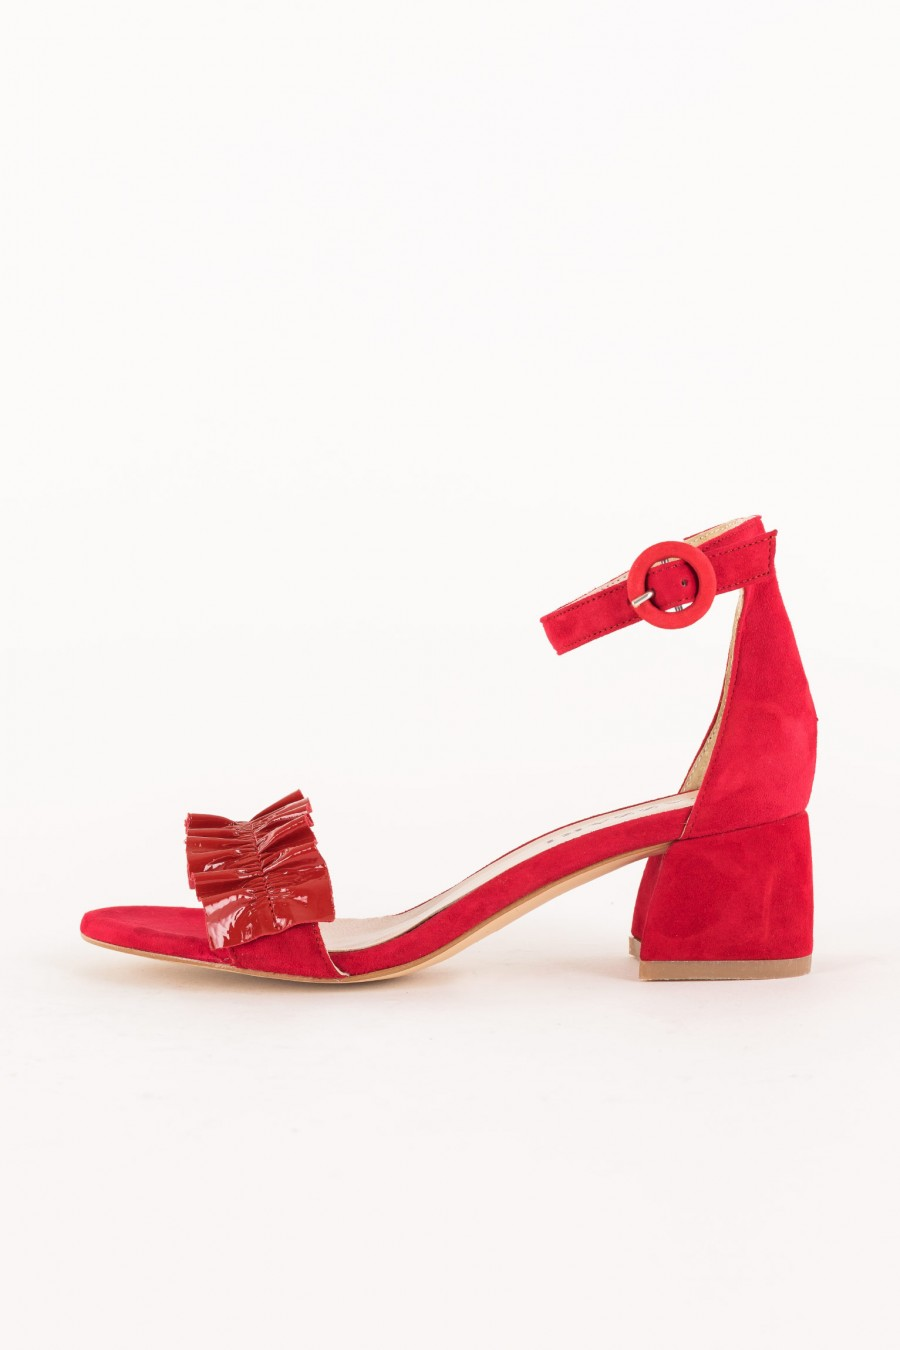 red sandal with low heel